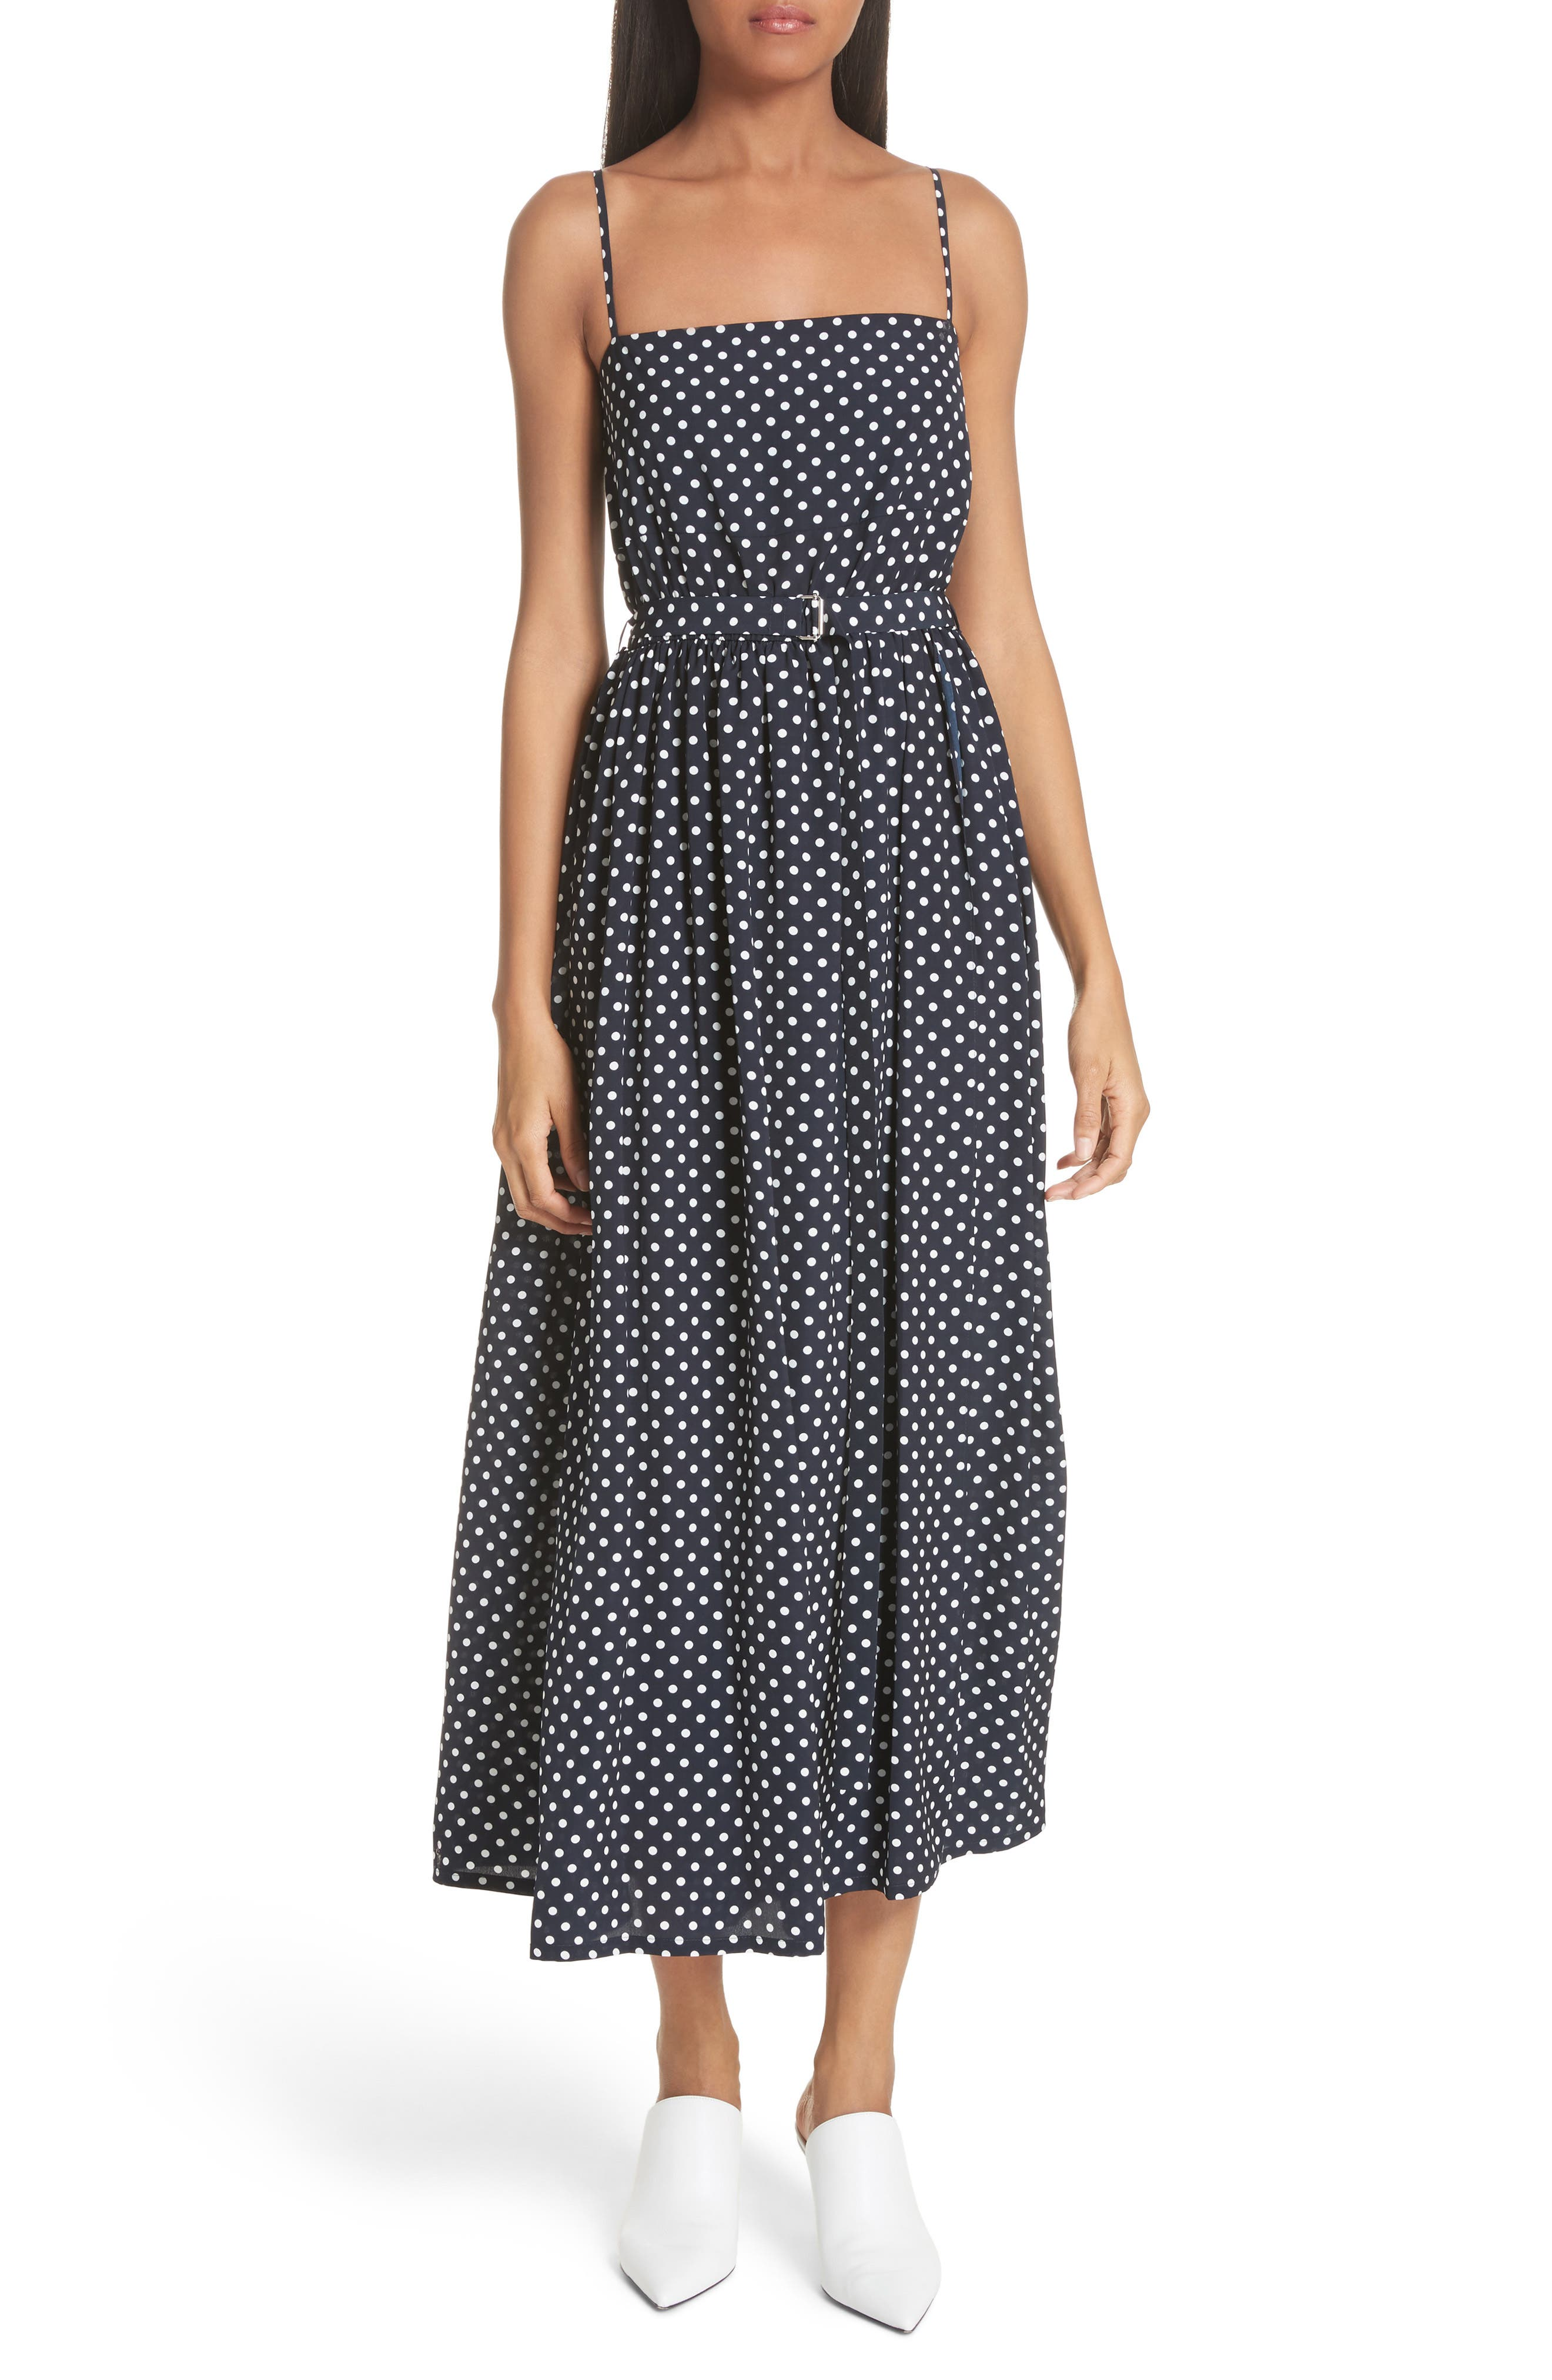 Polka Dot Midi Dress,                         Main,                         color, 410